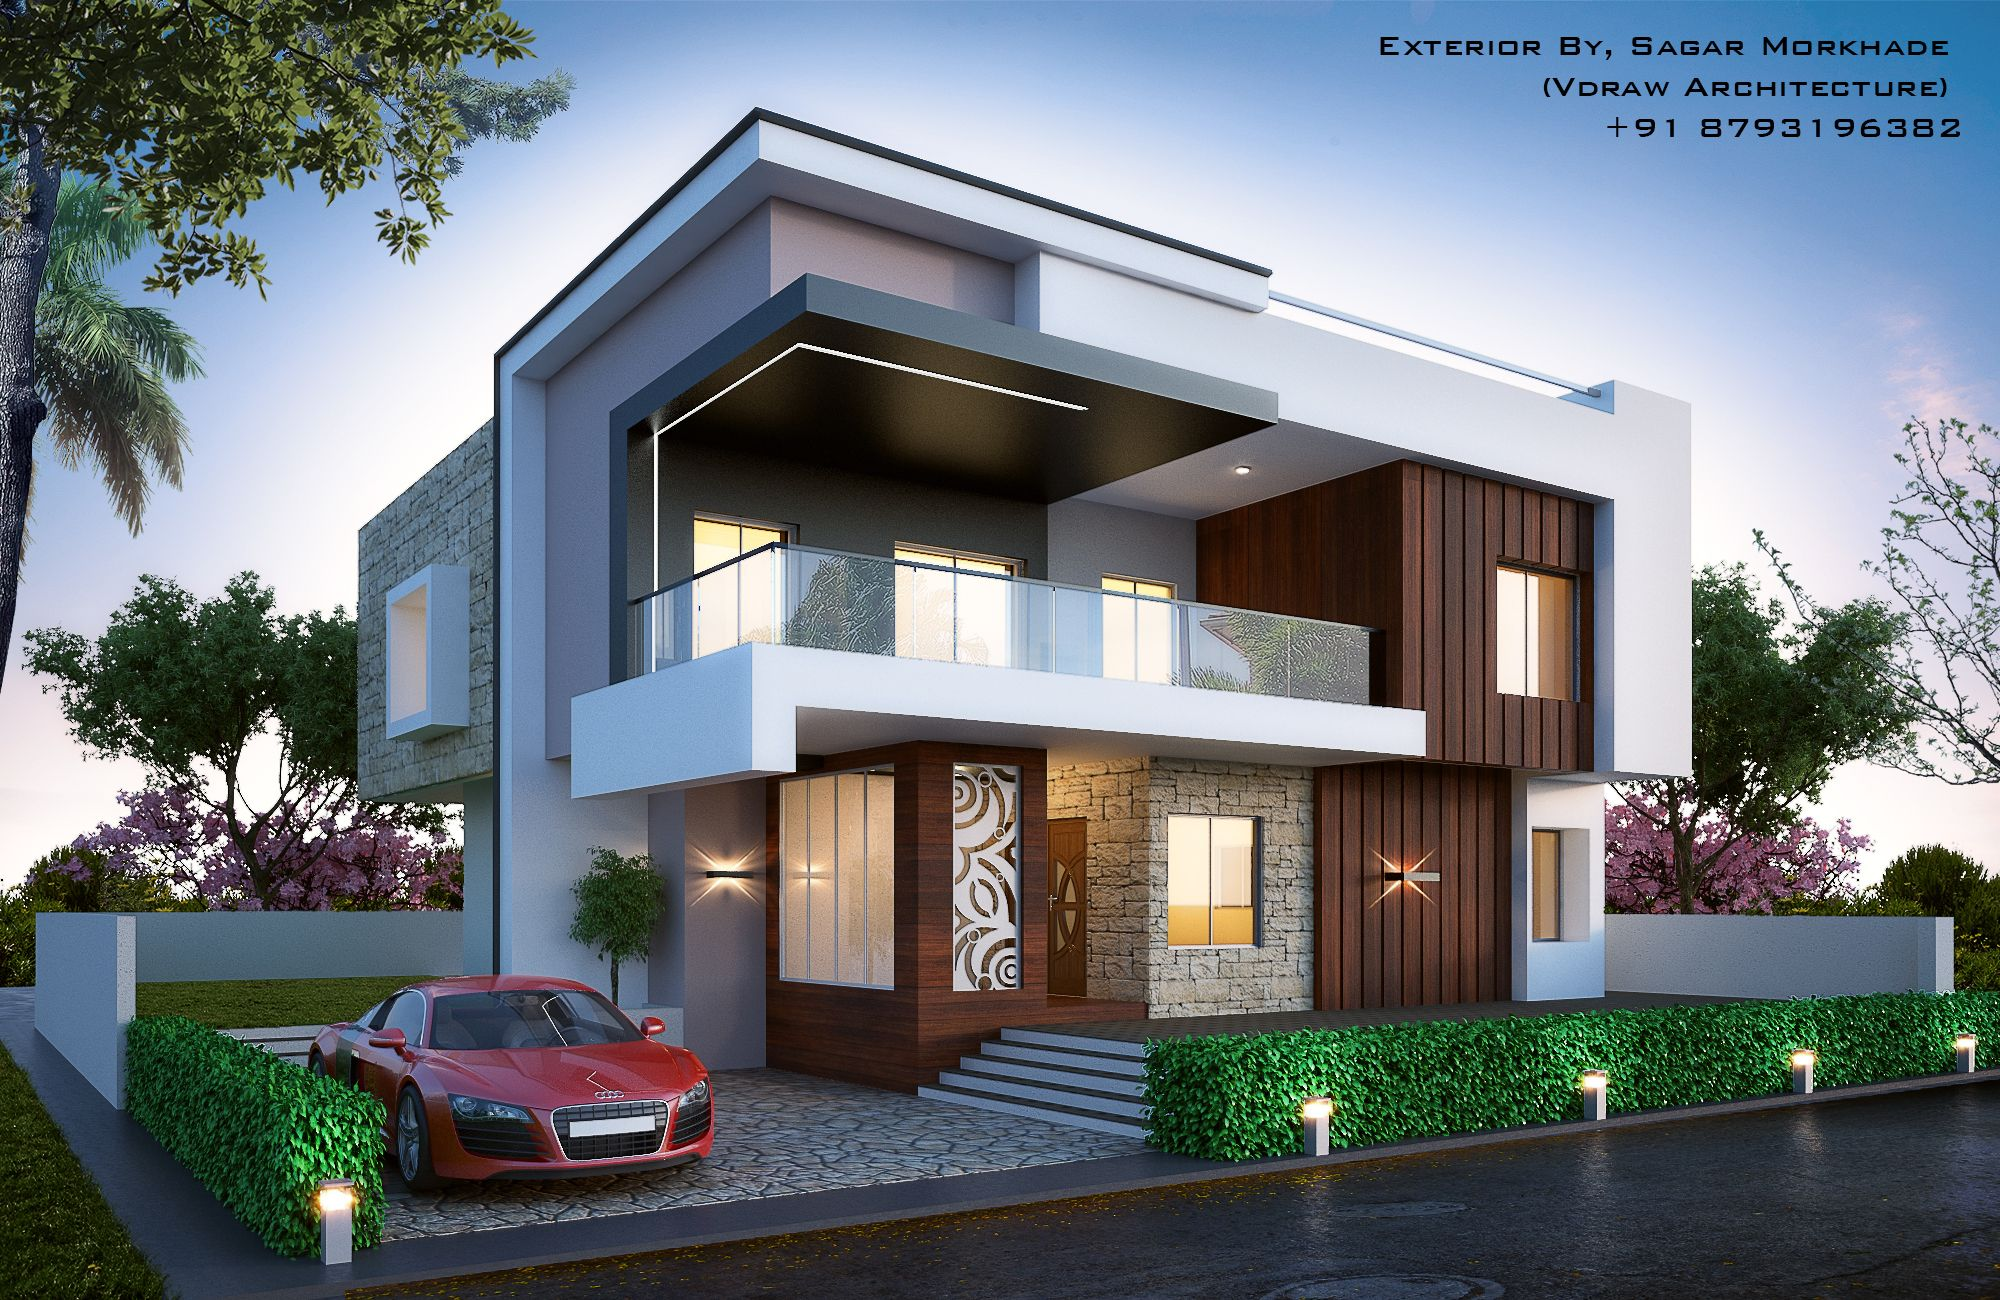 Modern bungalow exterior by sagar morkhade vdraw architecture 91 8793196382